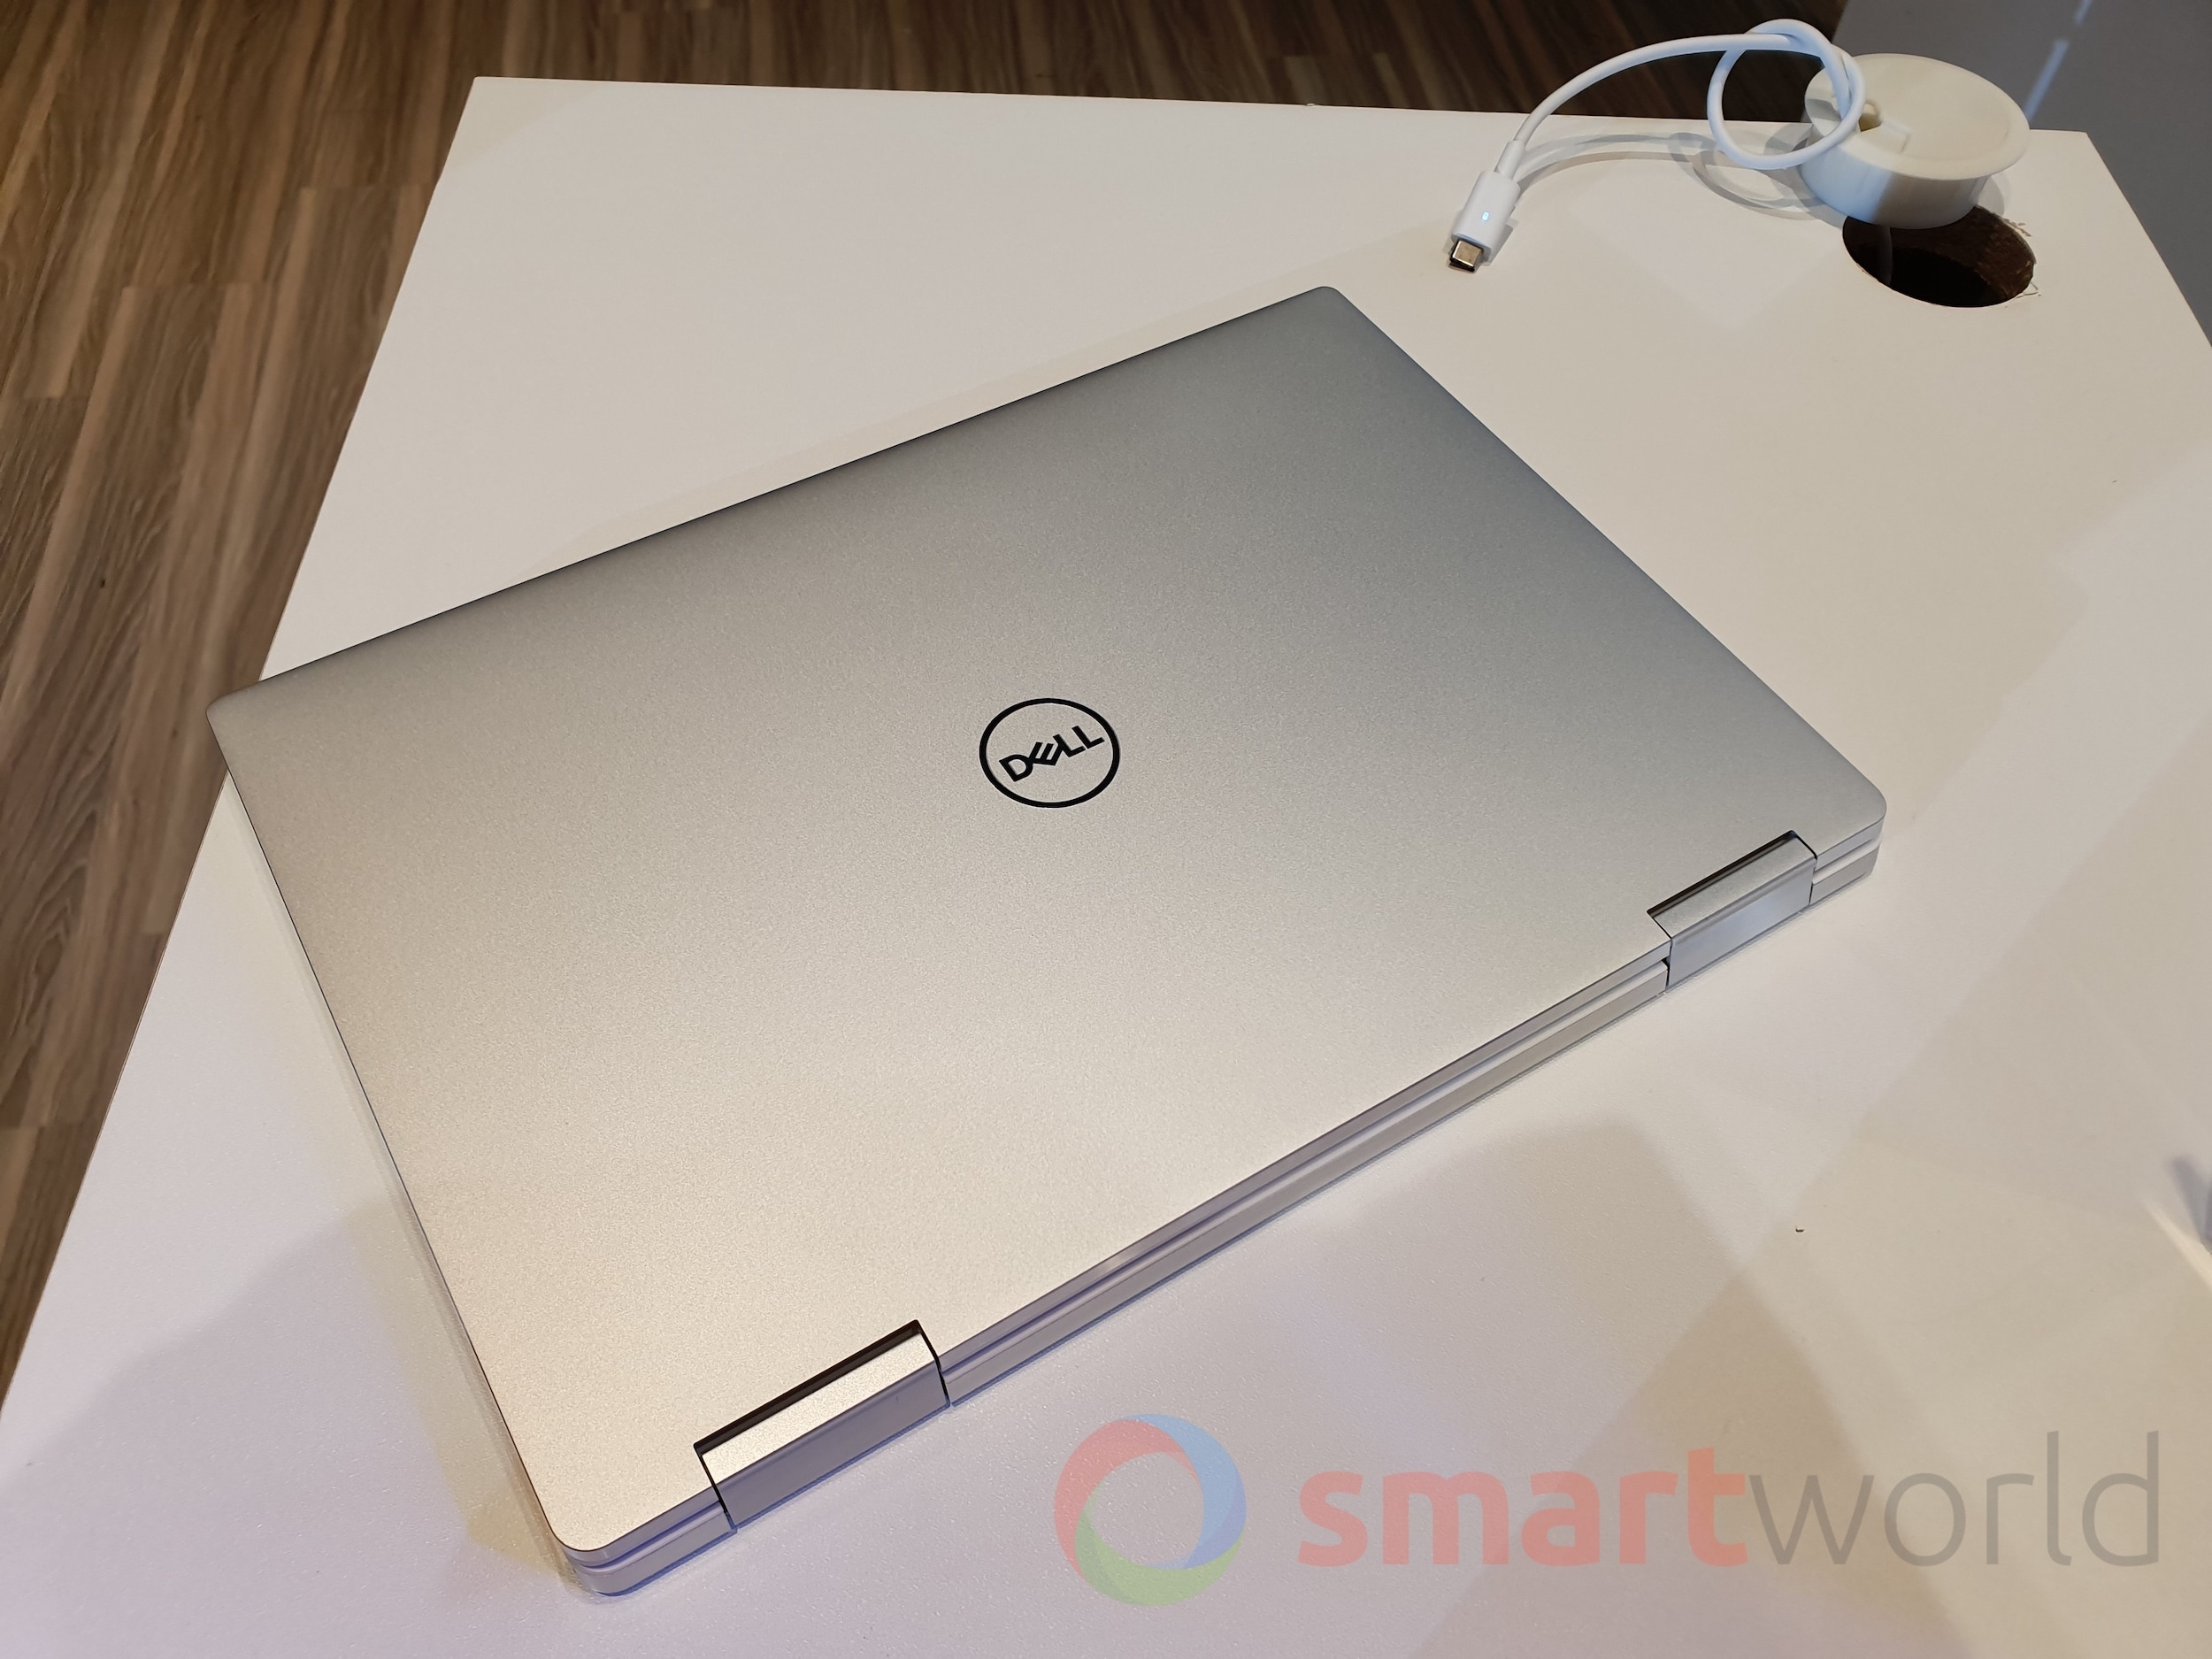 Dell XPS 13 2in1 2019 1